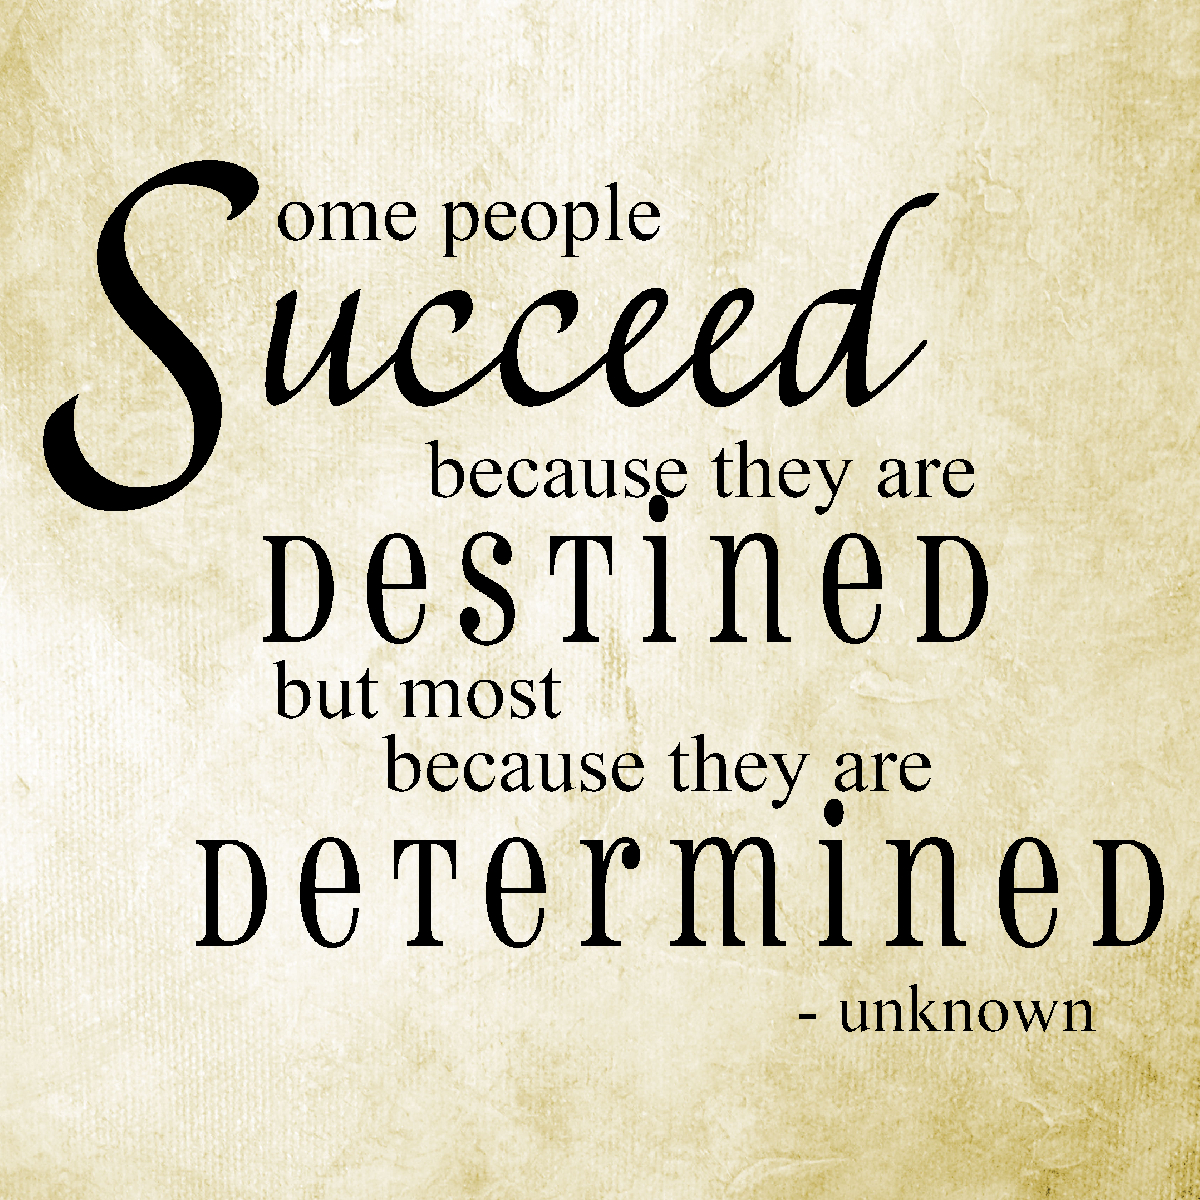 Persevering Quotes: Inspirational Quotes About Determination. QuotesGram